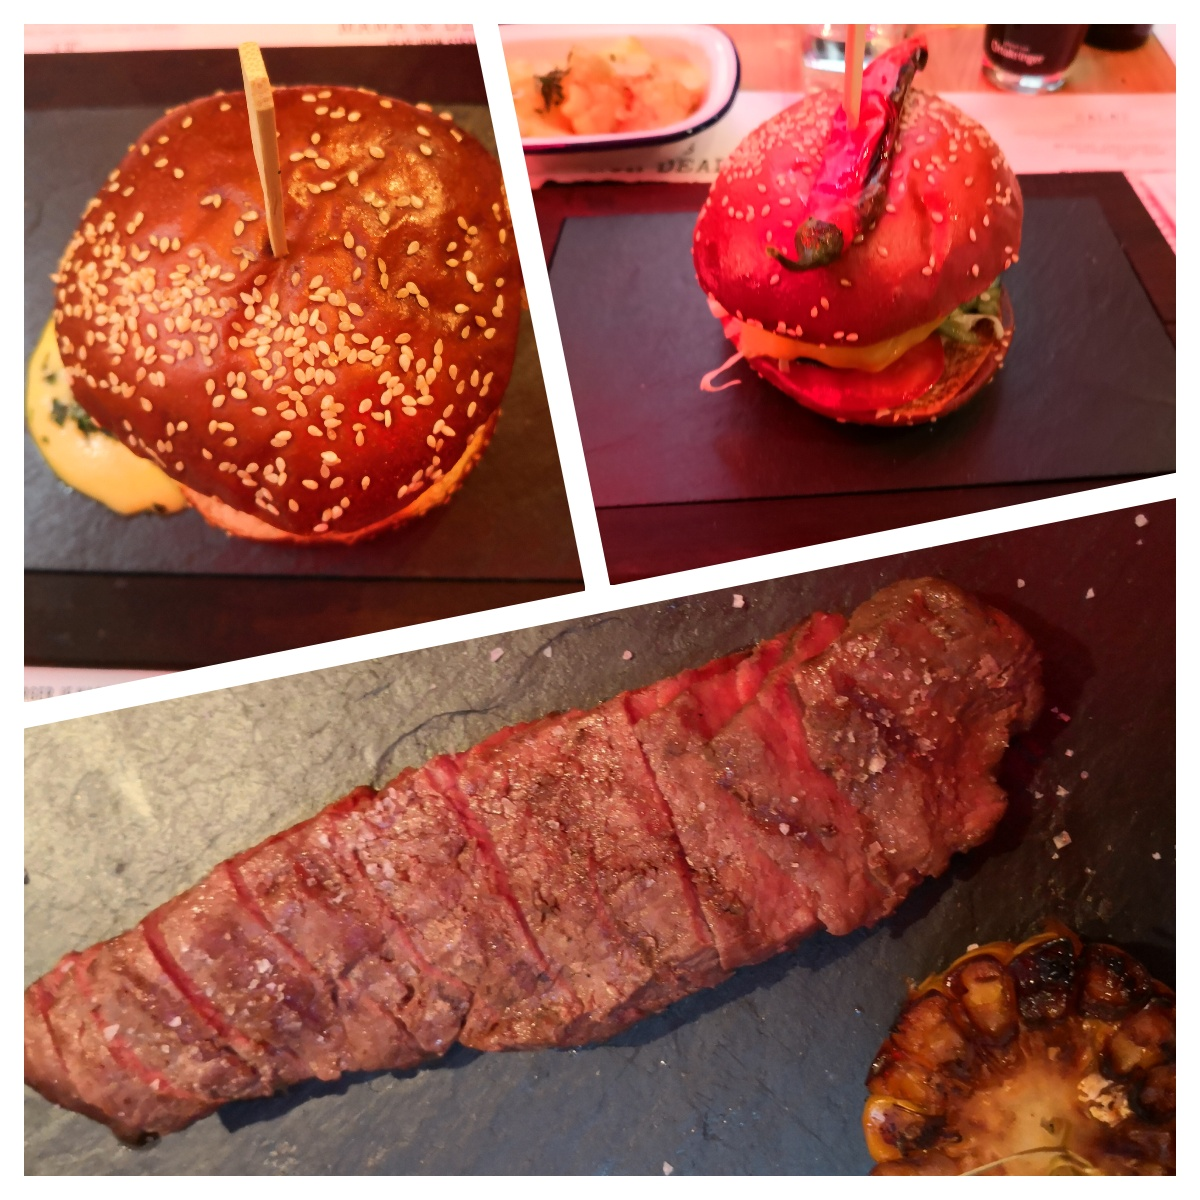 Burger und Flanksteak bei Mama und der Bulle, neu in 1010, Collage (c) Andera Pickl - kekinwien.at